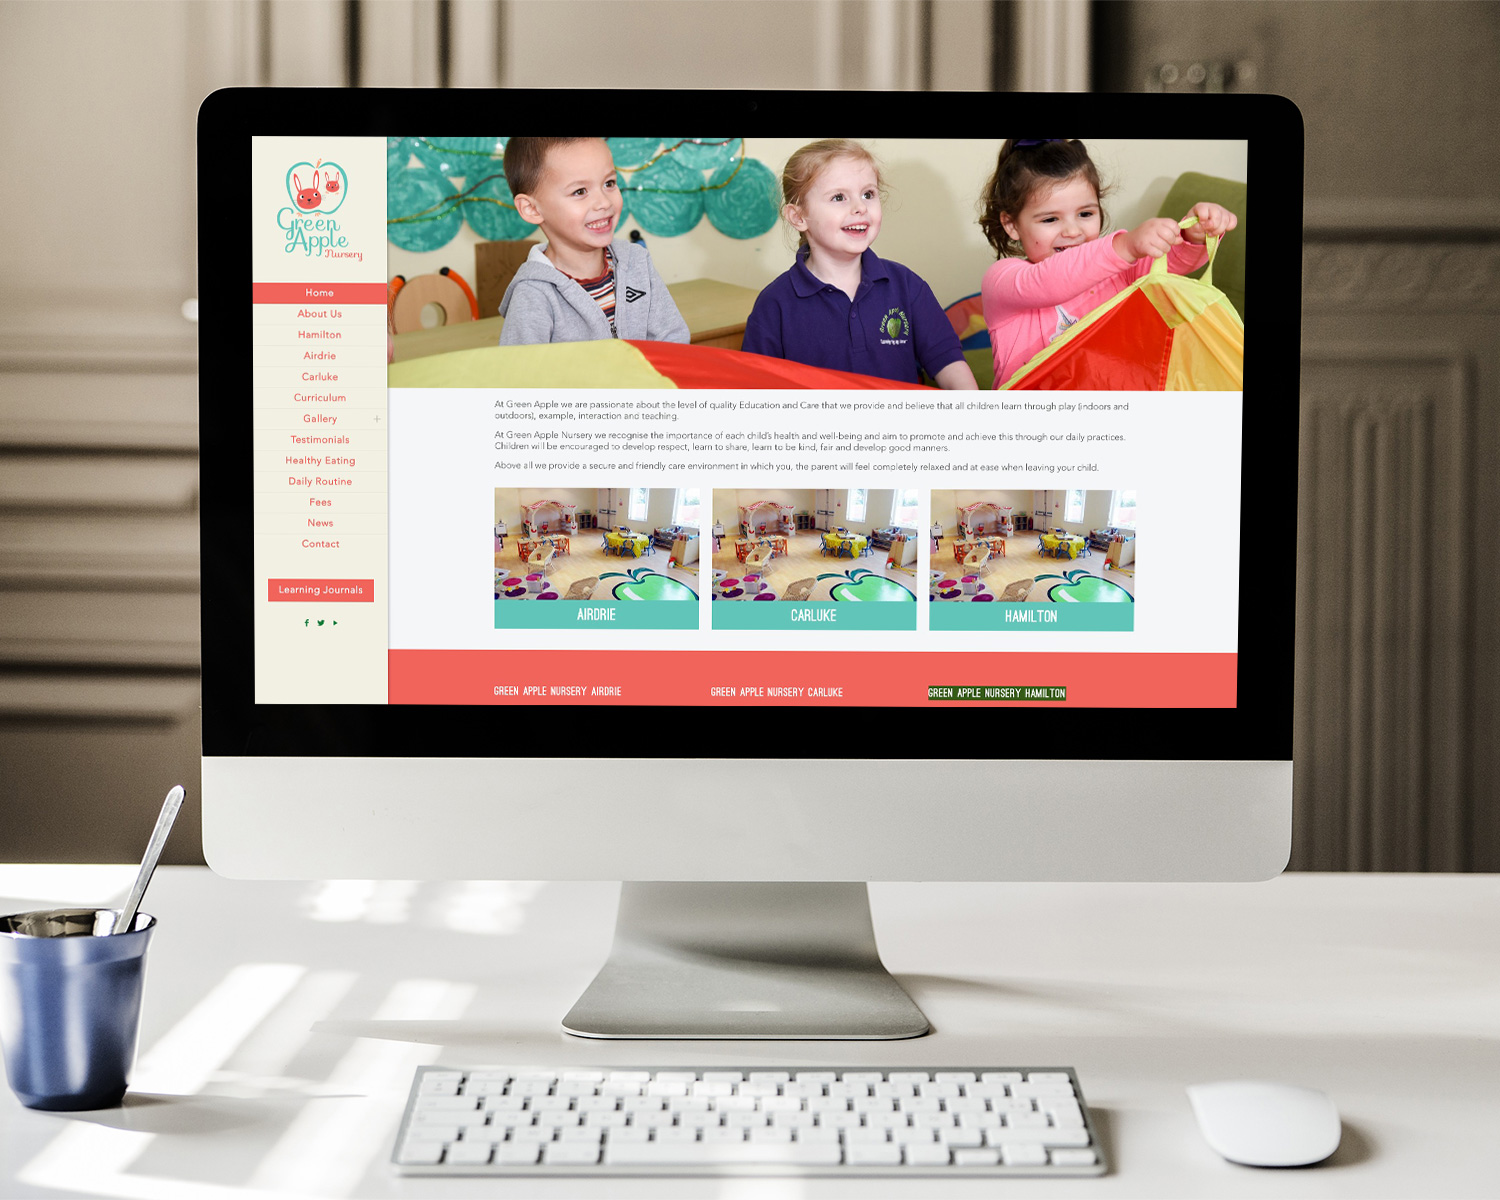 Day-Nursery-Web-Design-for-Green-Apple